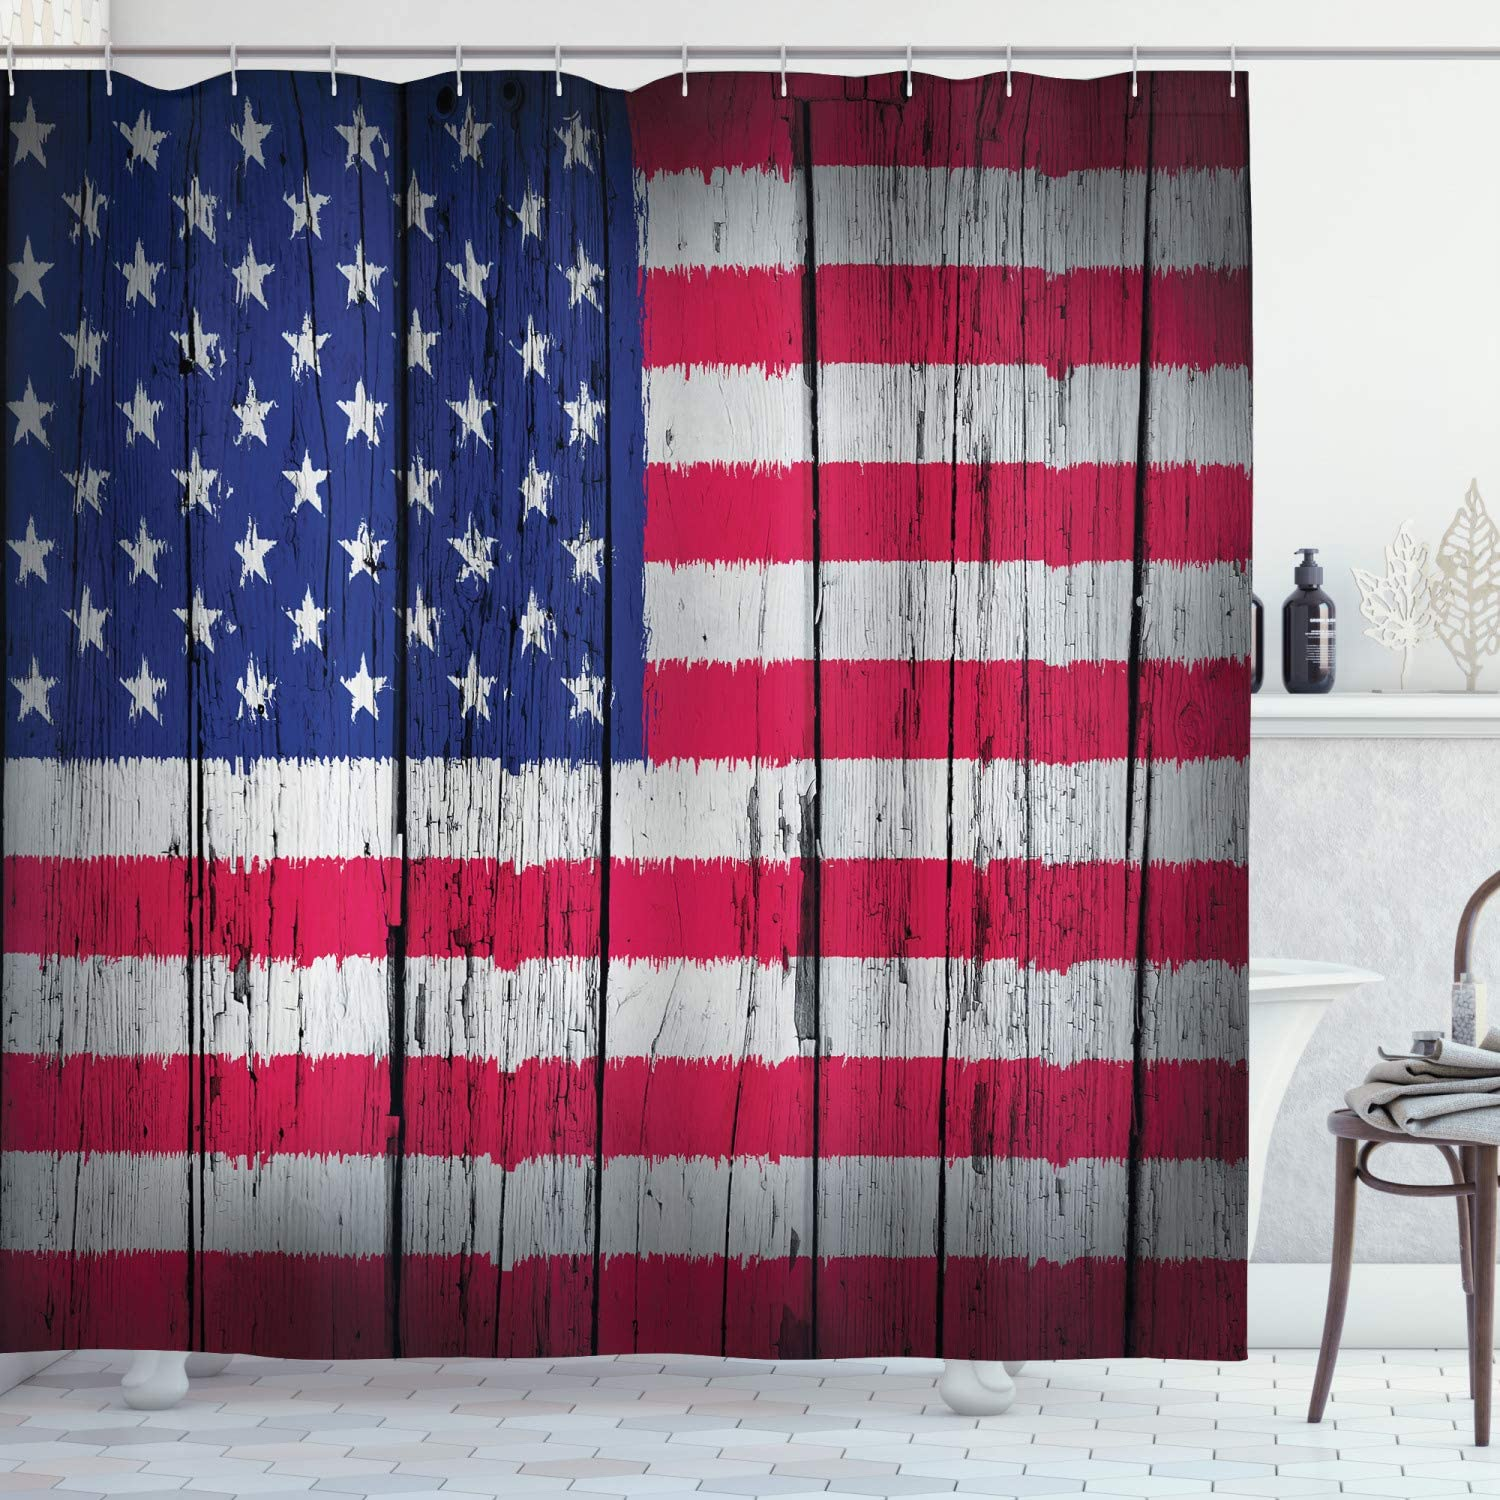 Ambesonne USA Shower Curtain, Fourth of July Independence Day Grunge Art Aged Hardwood Wall Looking Art Patriotic States Concept Print, Cloth Fabric Bathroom Decor Set with Hooks, 75